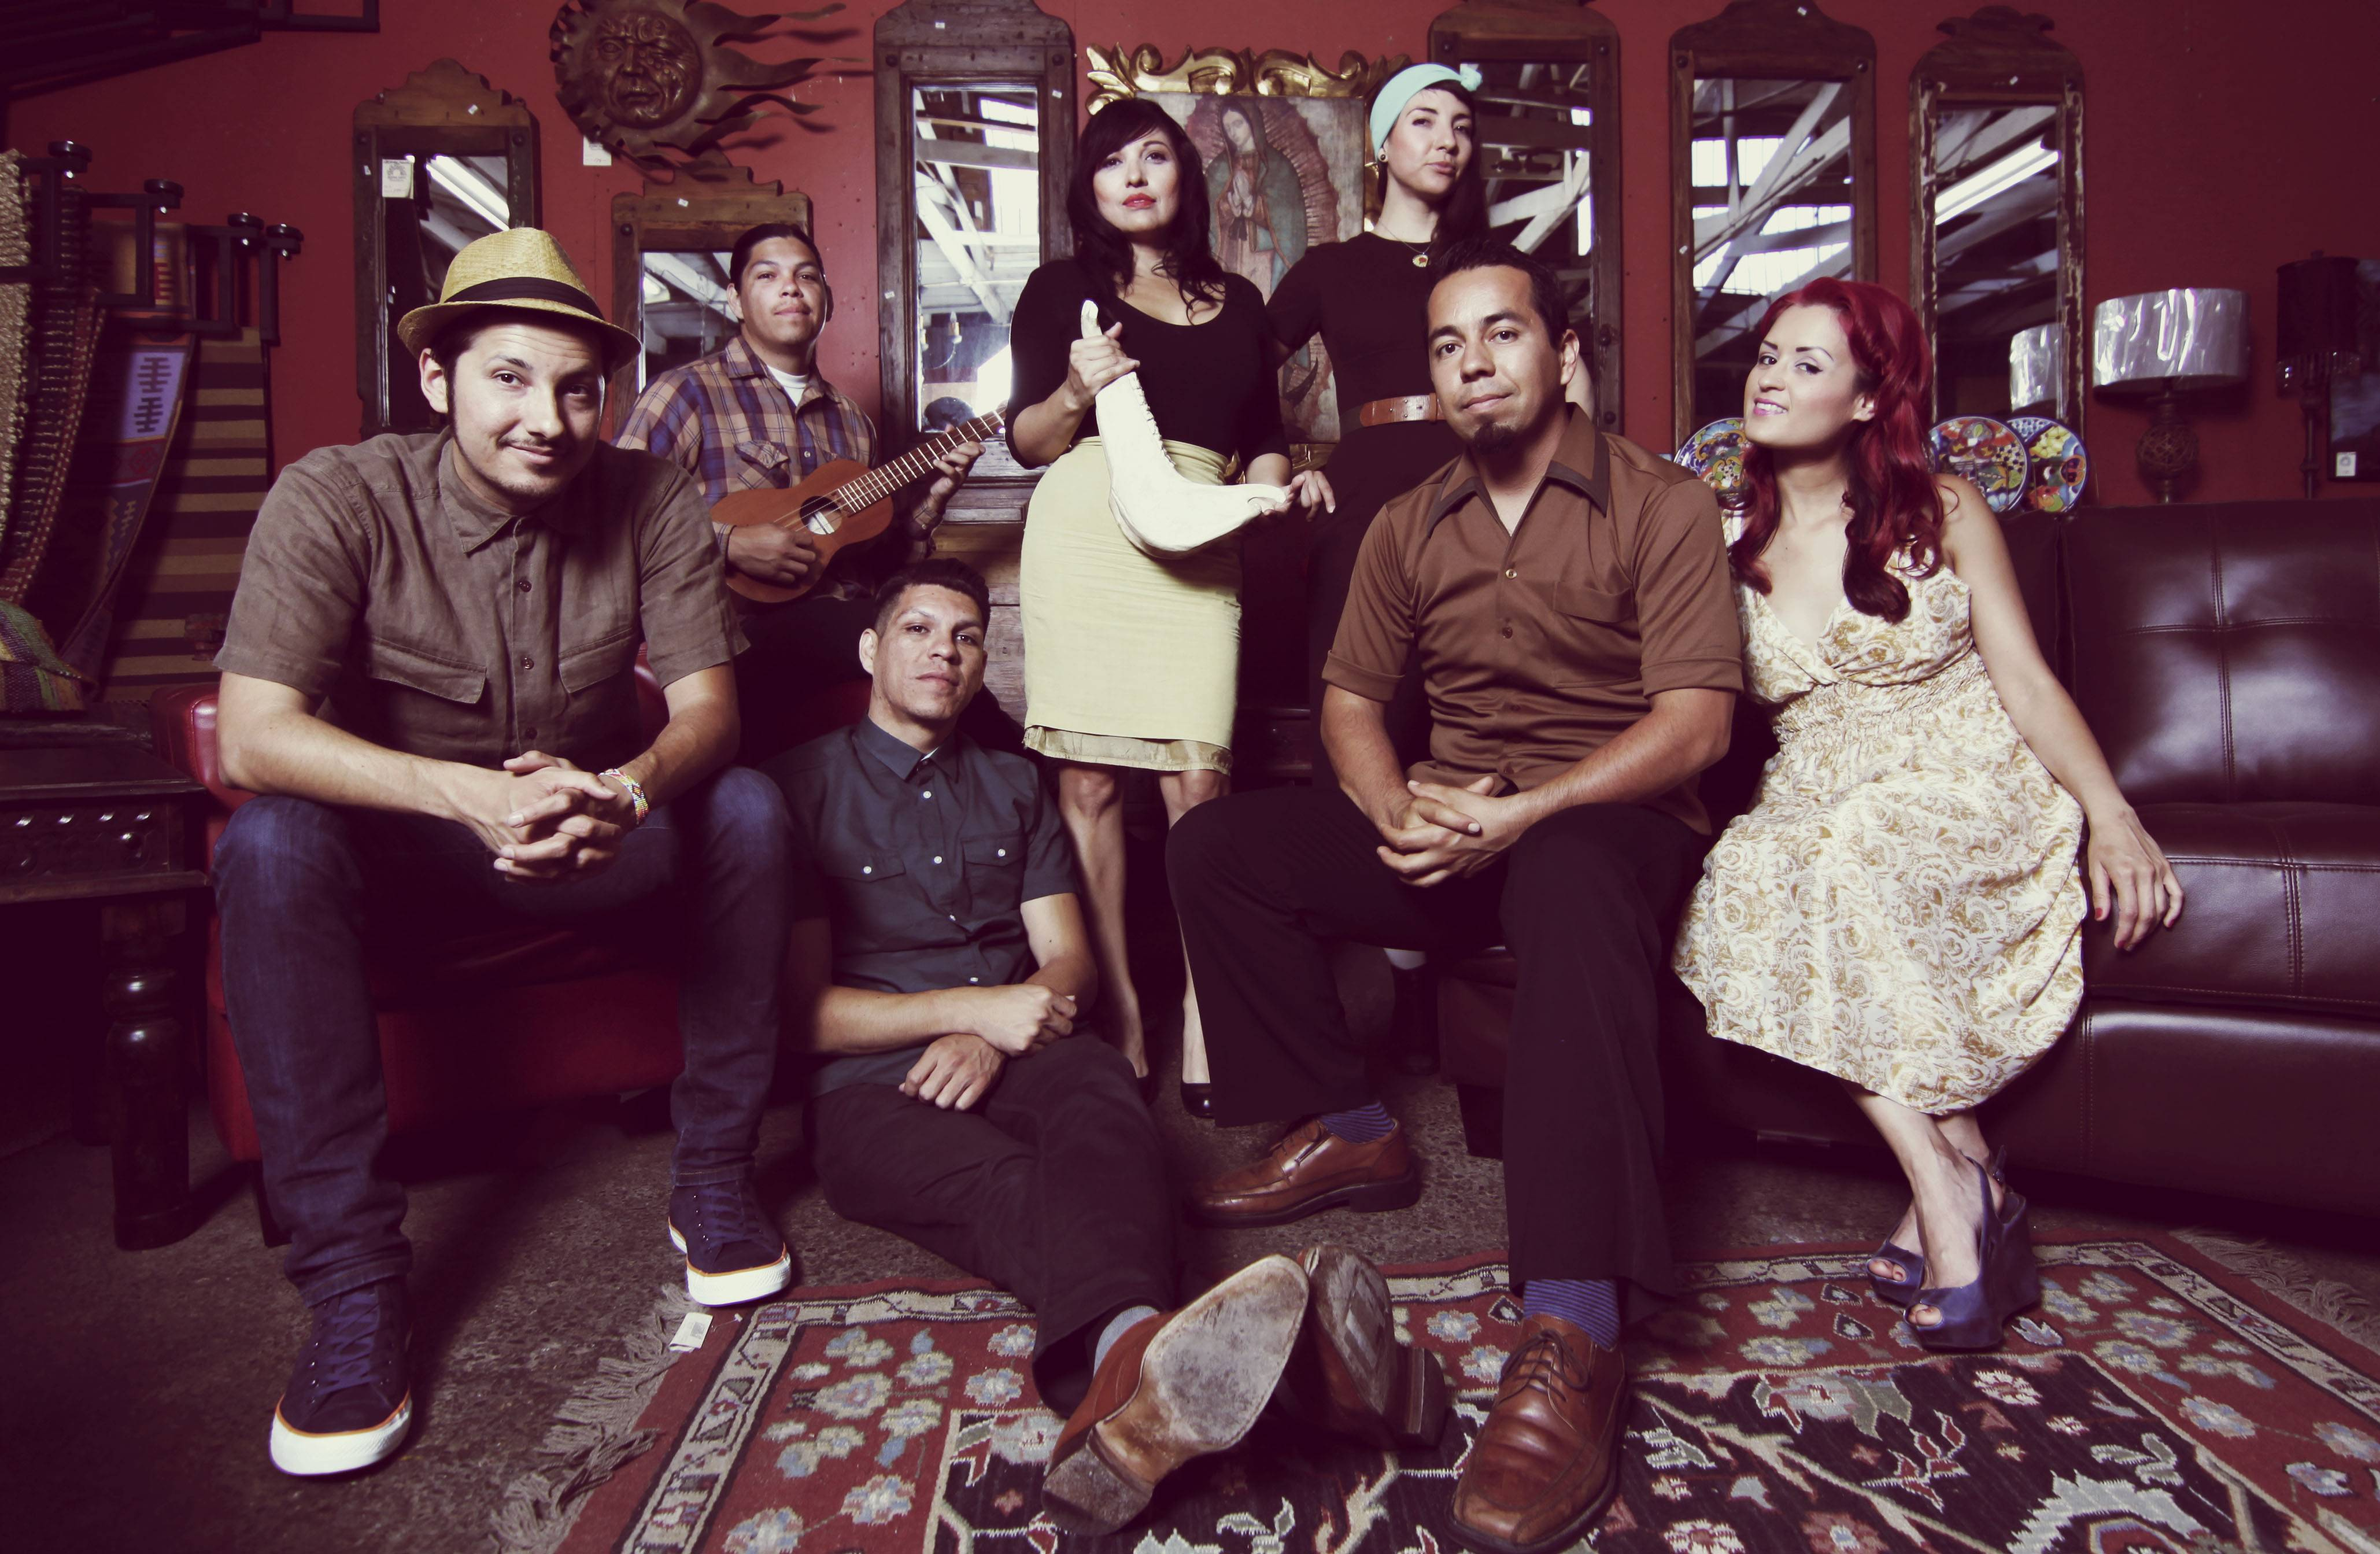 Las Cafeteras, a group of musicians from East Los Angeles, will perform and then conduct an interactive workshop on racism on Tuesday, Nov. 5.